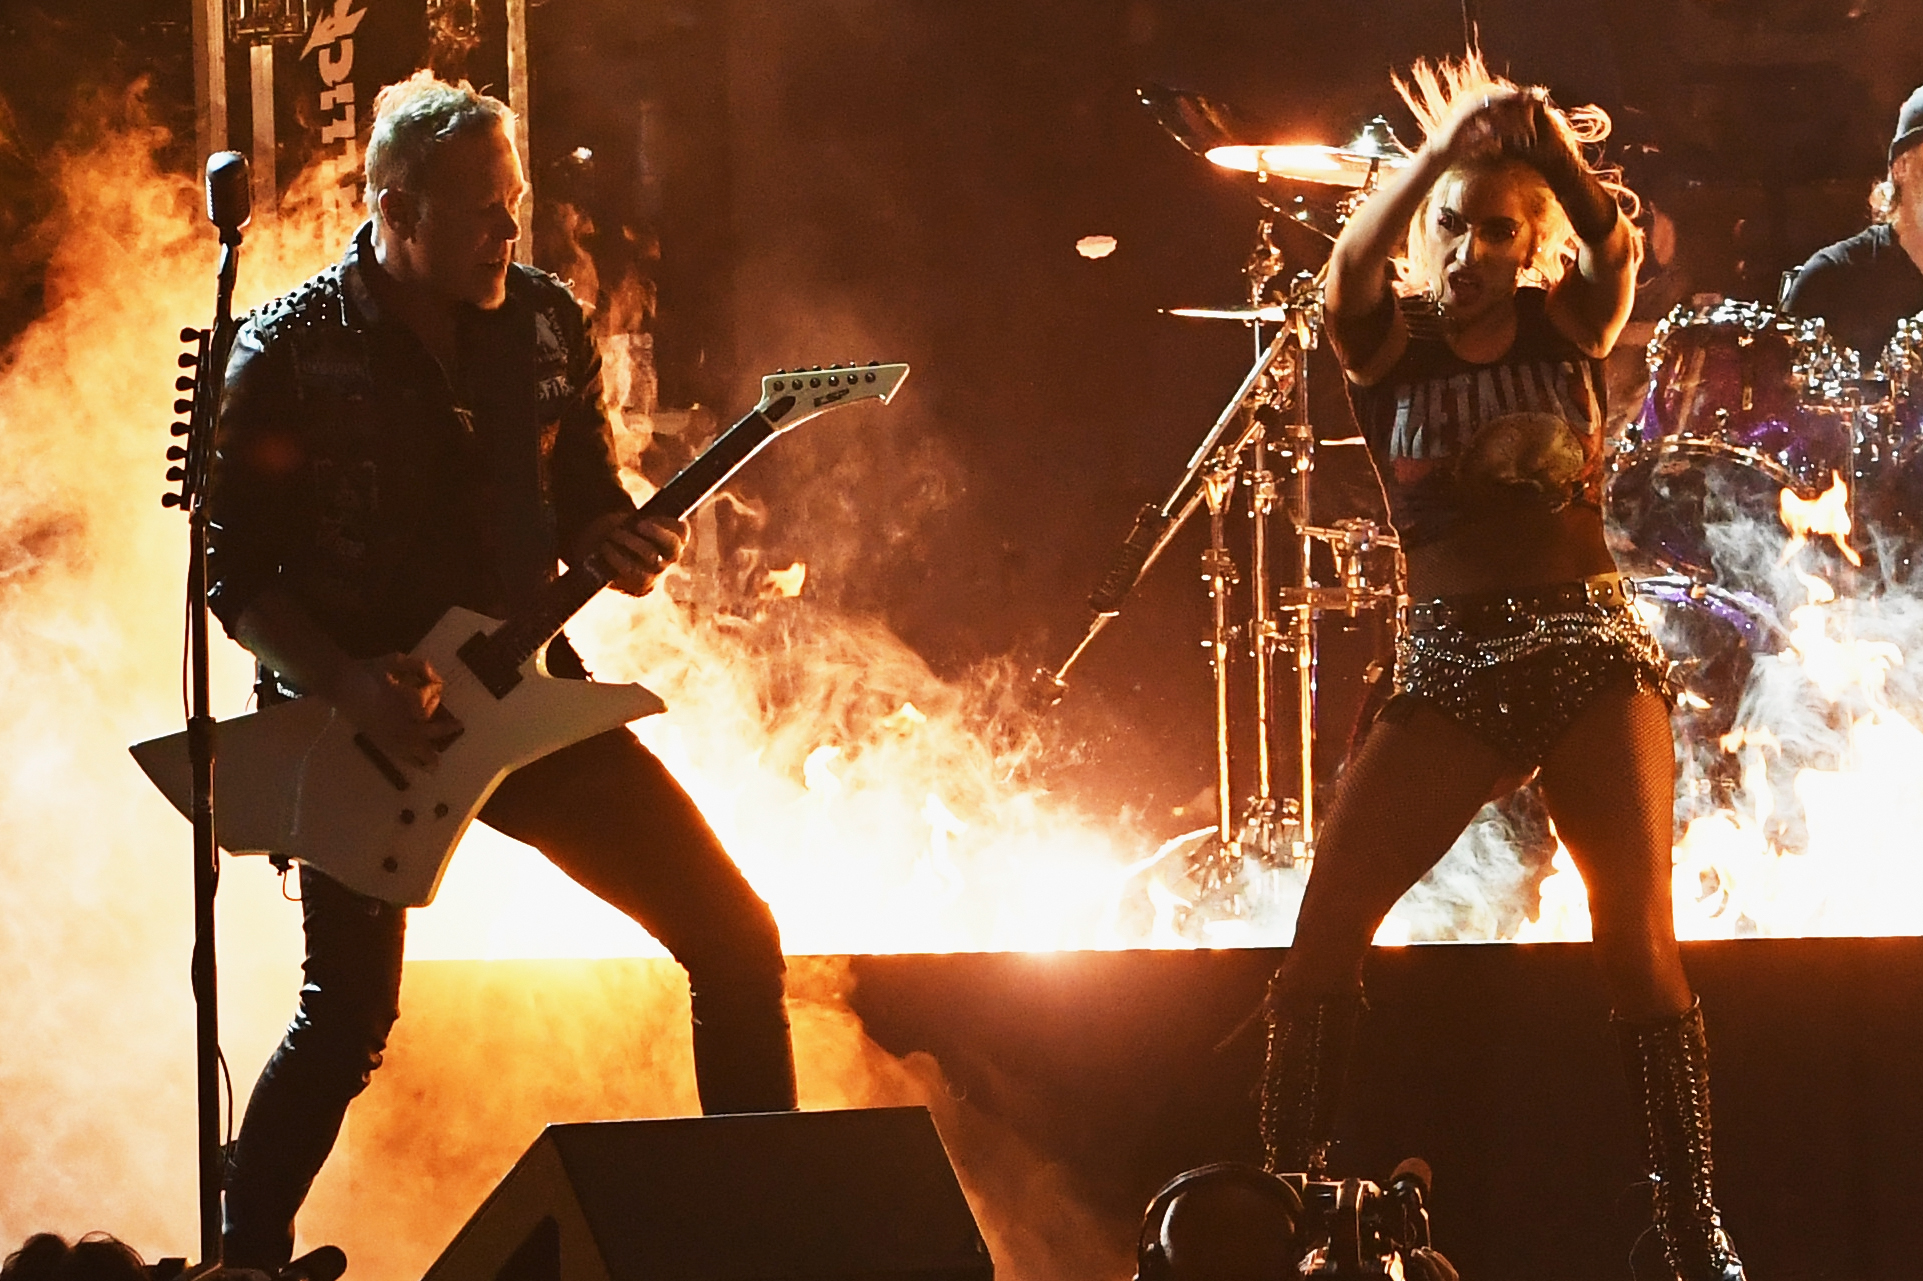 LOS ANGELES, CA - FEBRUARY 12: Recording artists James Hetfield (L) of music group Metallica and Lady Gaga perform onstage during The 59th GRAMMY Awards at STAPLES Center on February 12, 2017 in Los Angeles, California.   Kevin Winter/Getty Images for NARAS/AFP